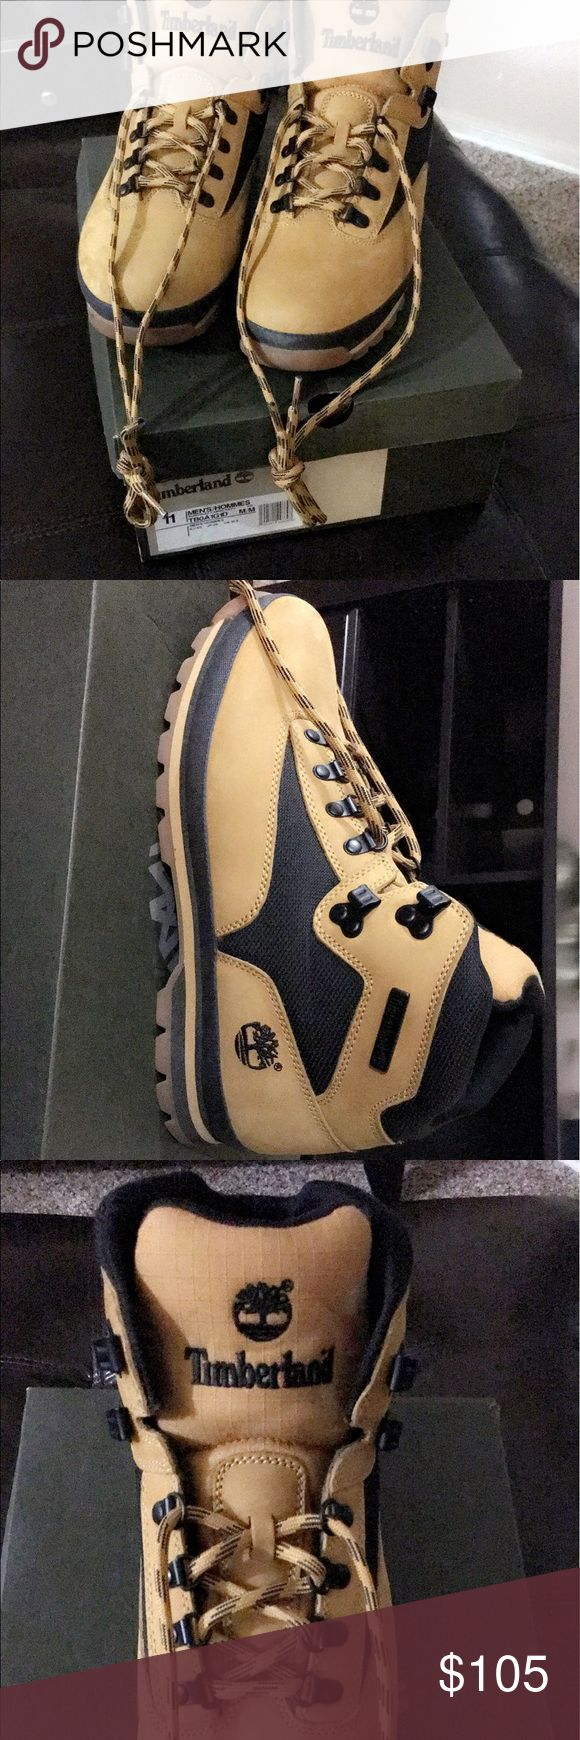 Timberland Euro Hiker Boot 10/10 condition. Will come double boxed. Timberland Shoes Boots